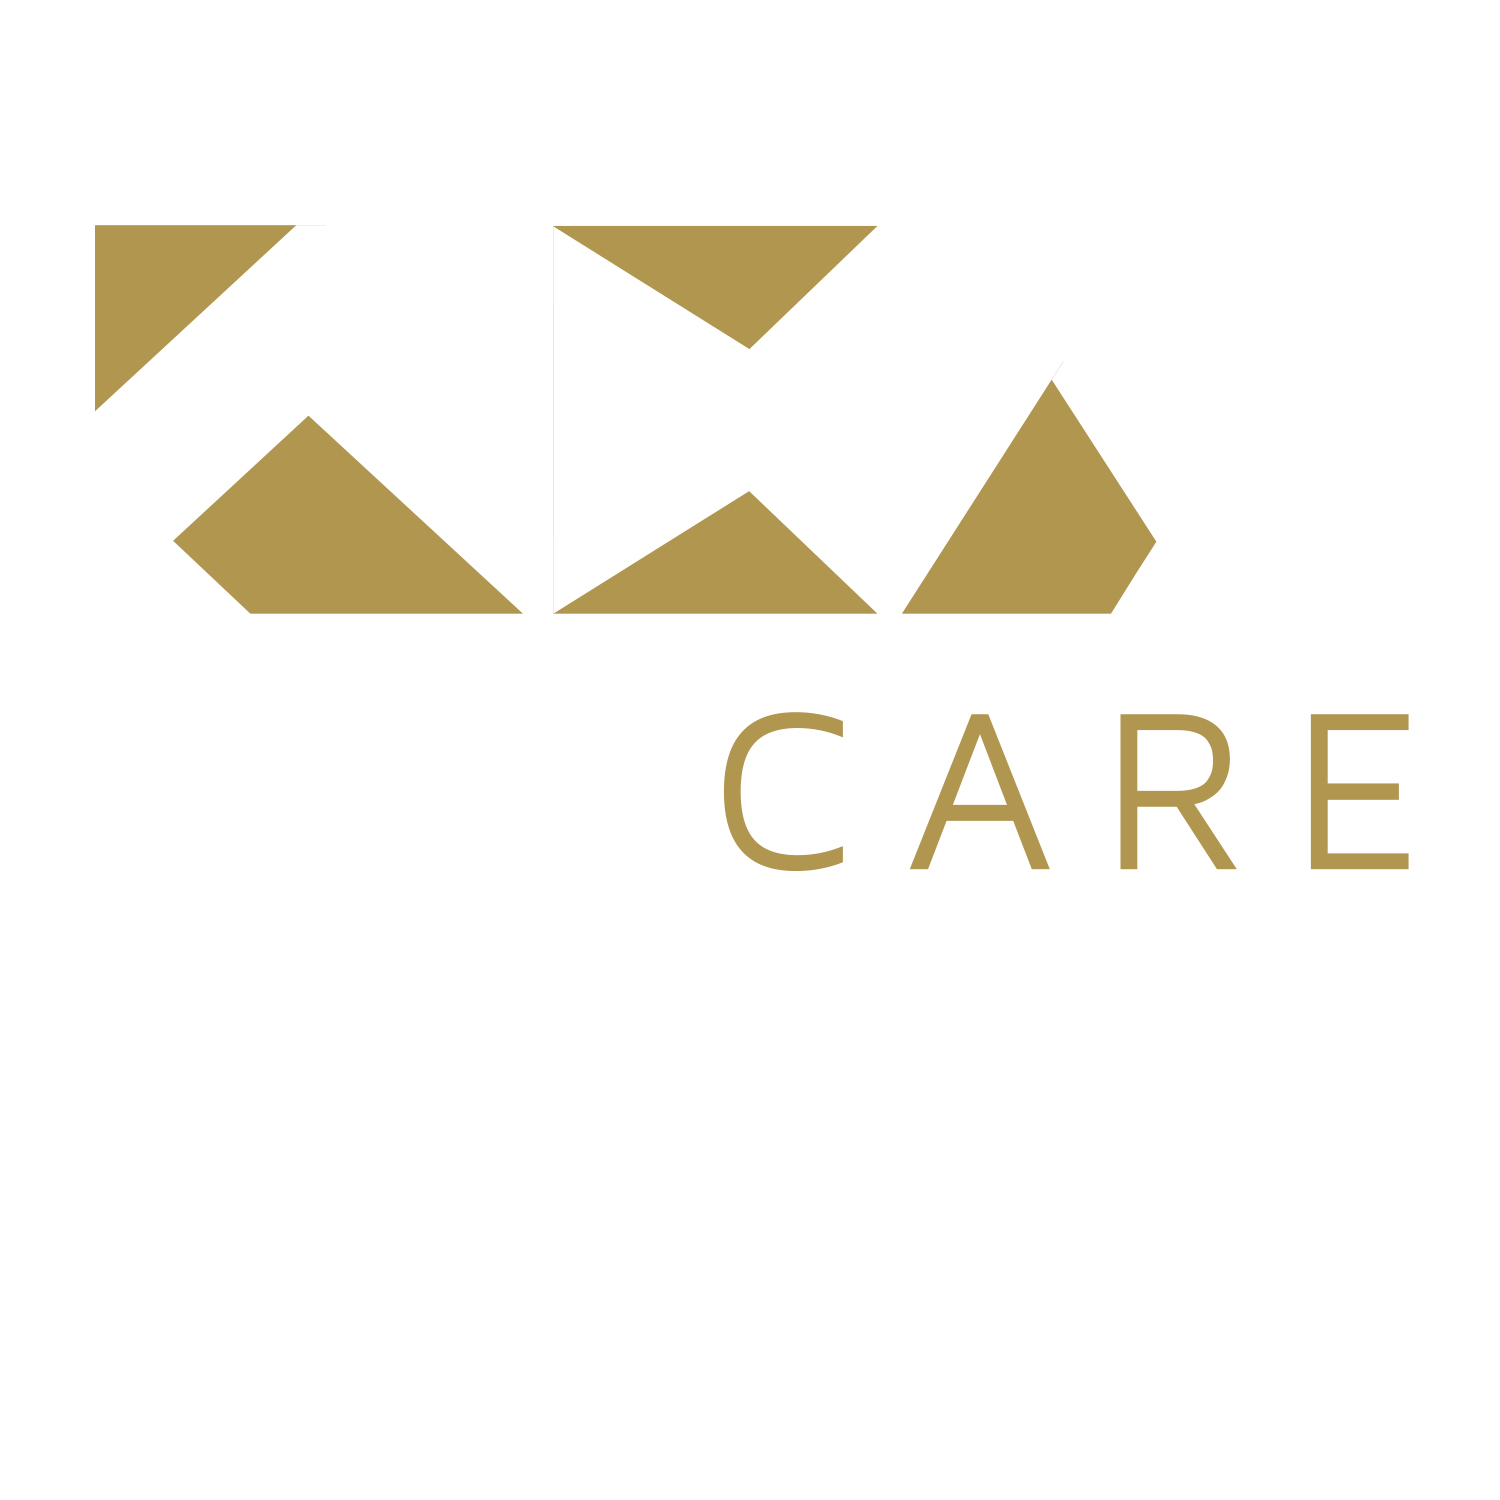 KEA CARE COMMUNITY Logo